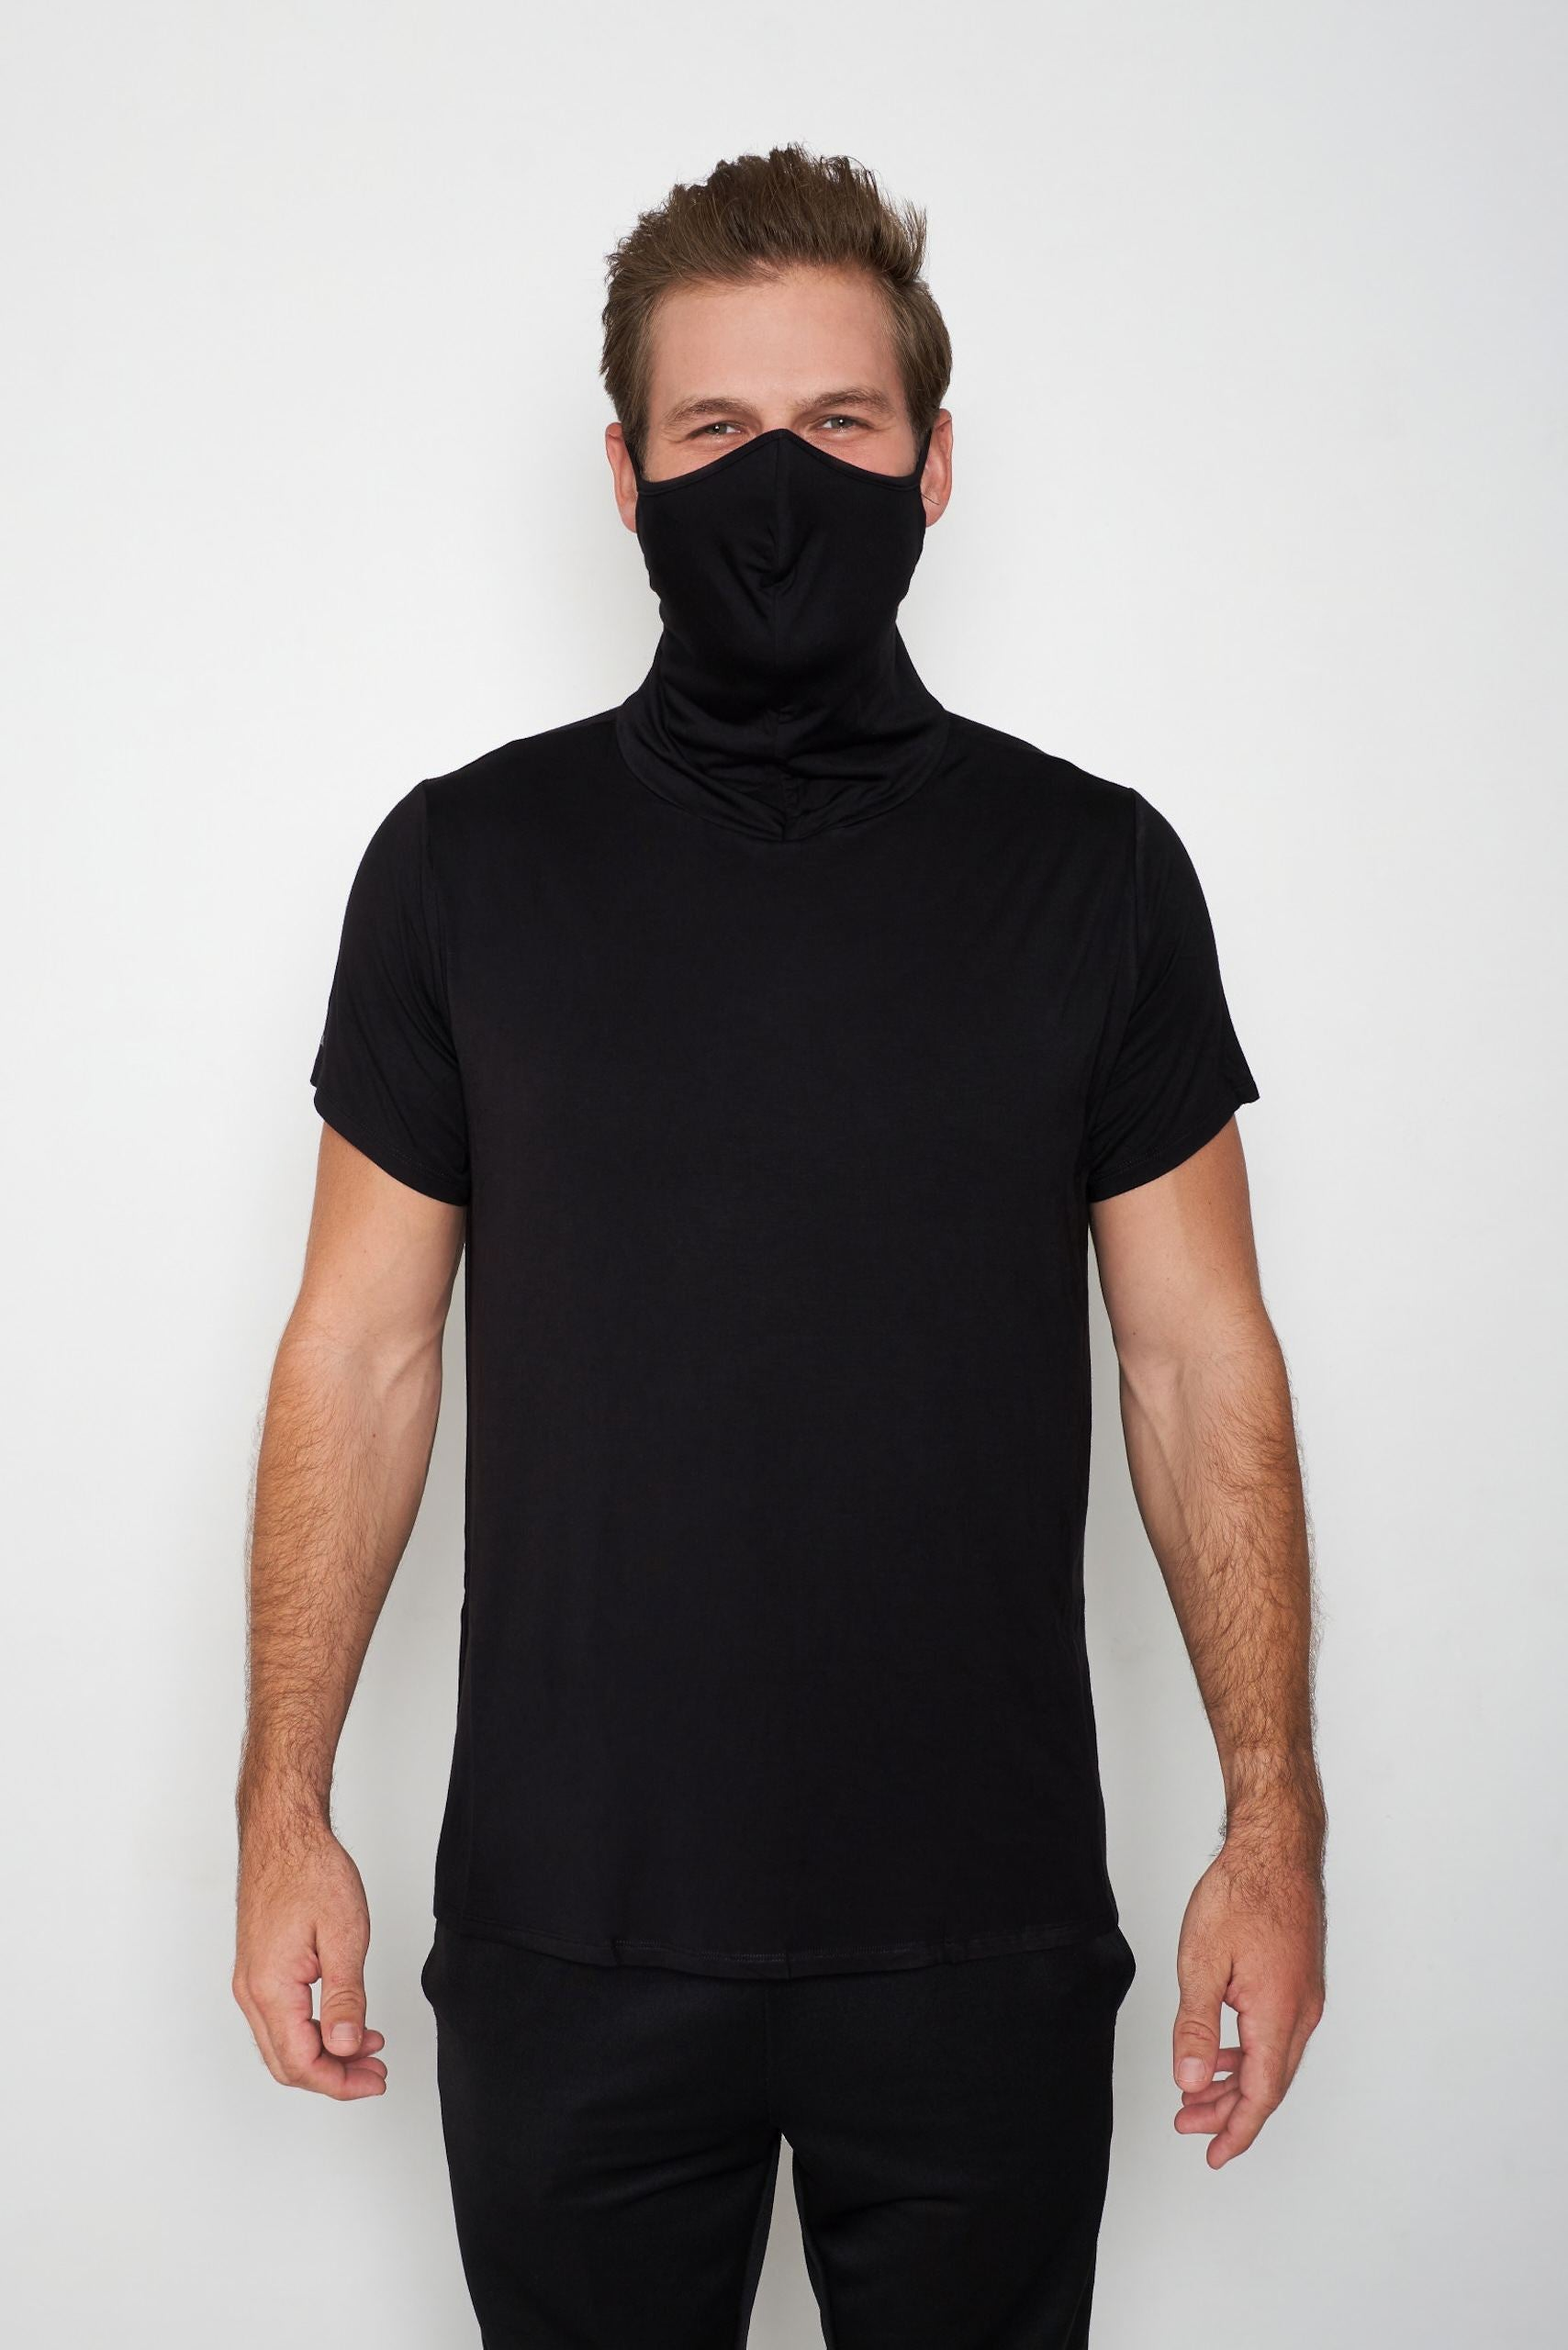 Adult Short Sleeve Black Shmask™ Earloop Face Mask for Kids and Adults